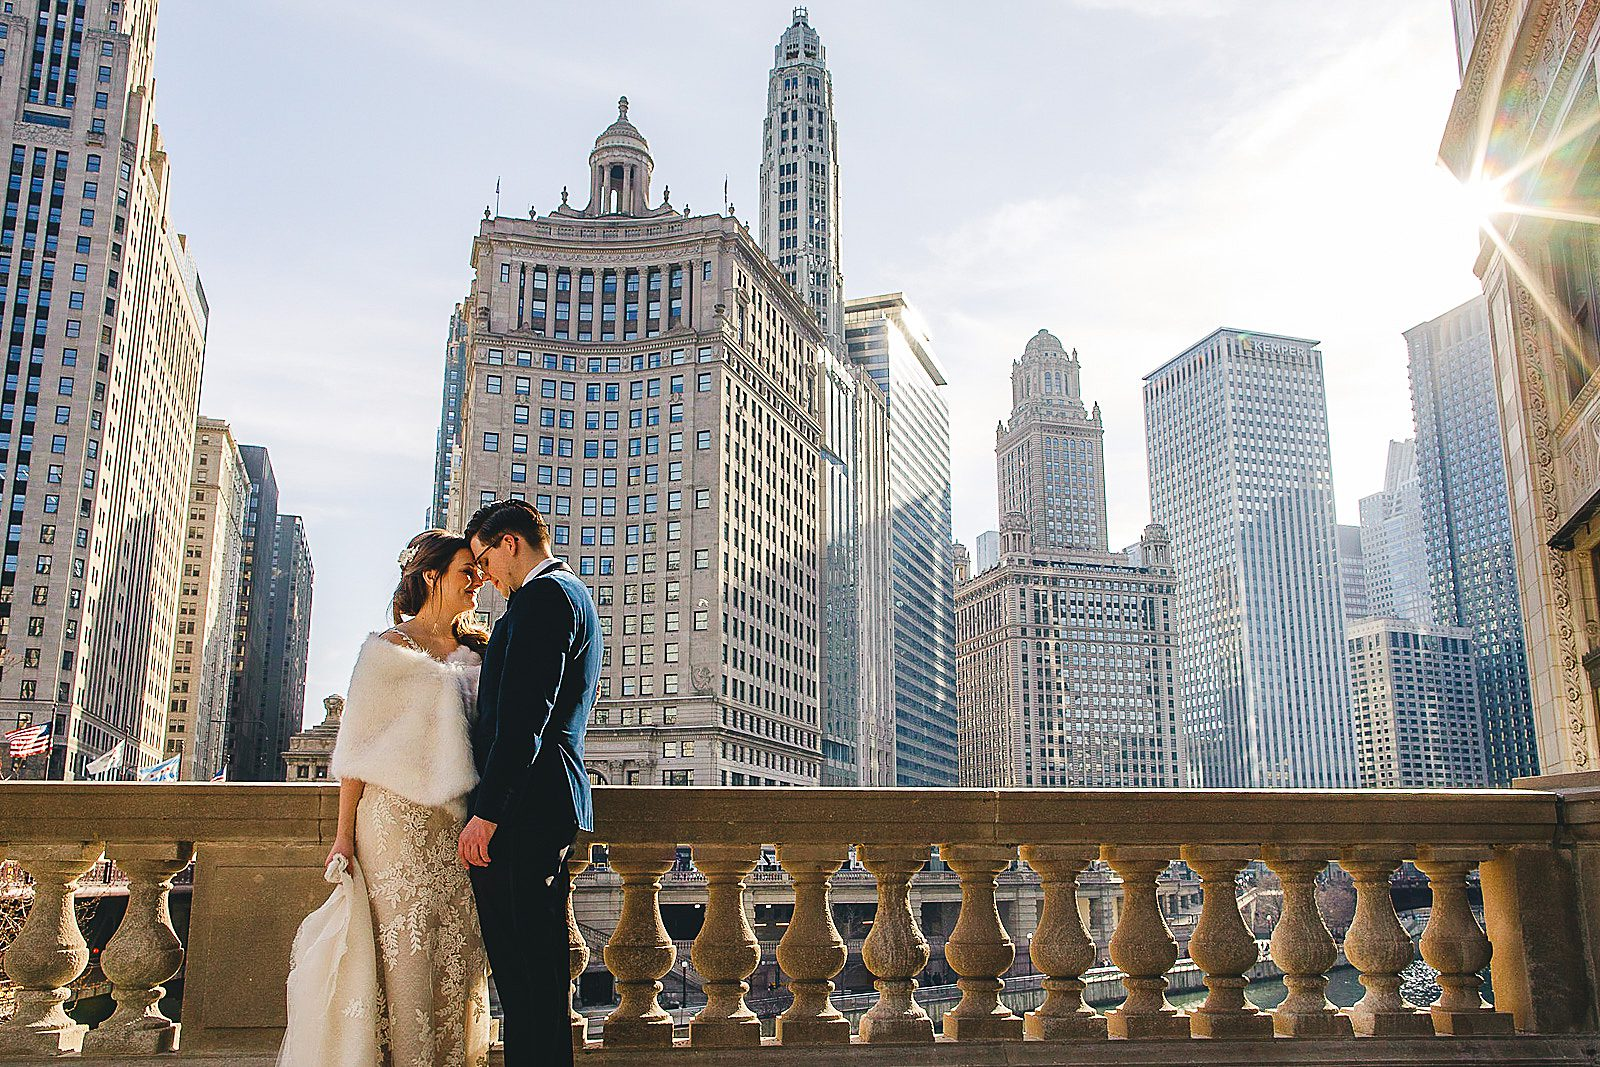 16 chicago wedding photograhy - The Wedding of Samantha + Kyle in Chicago